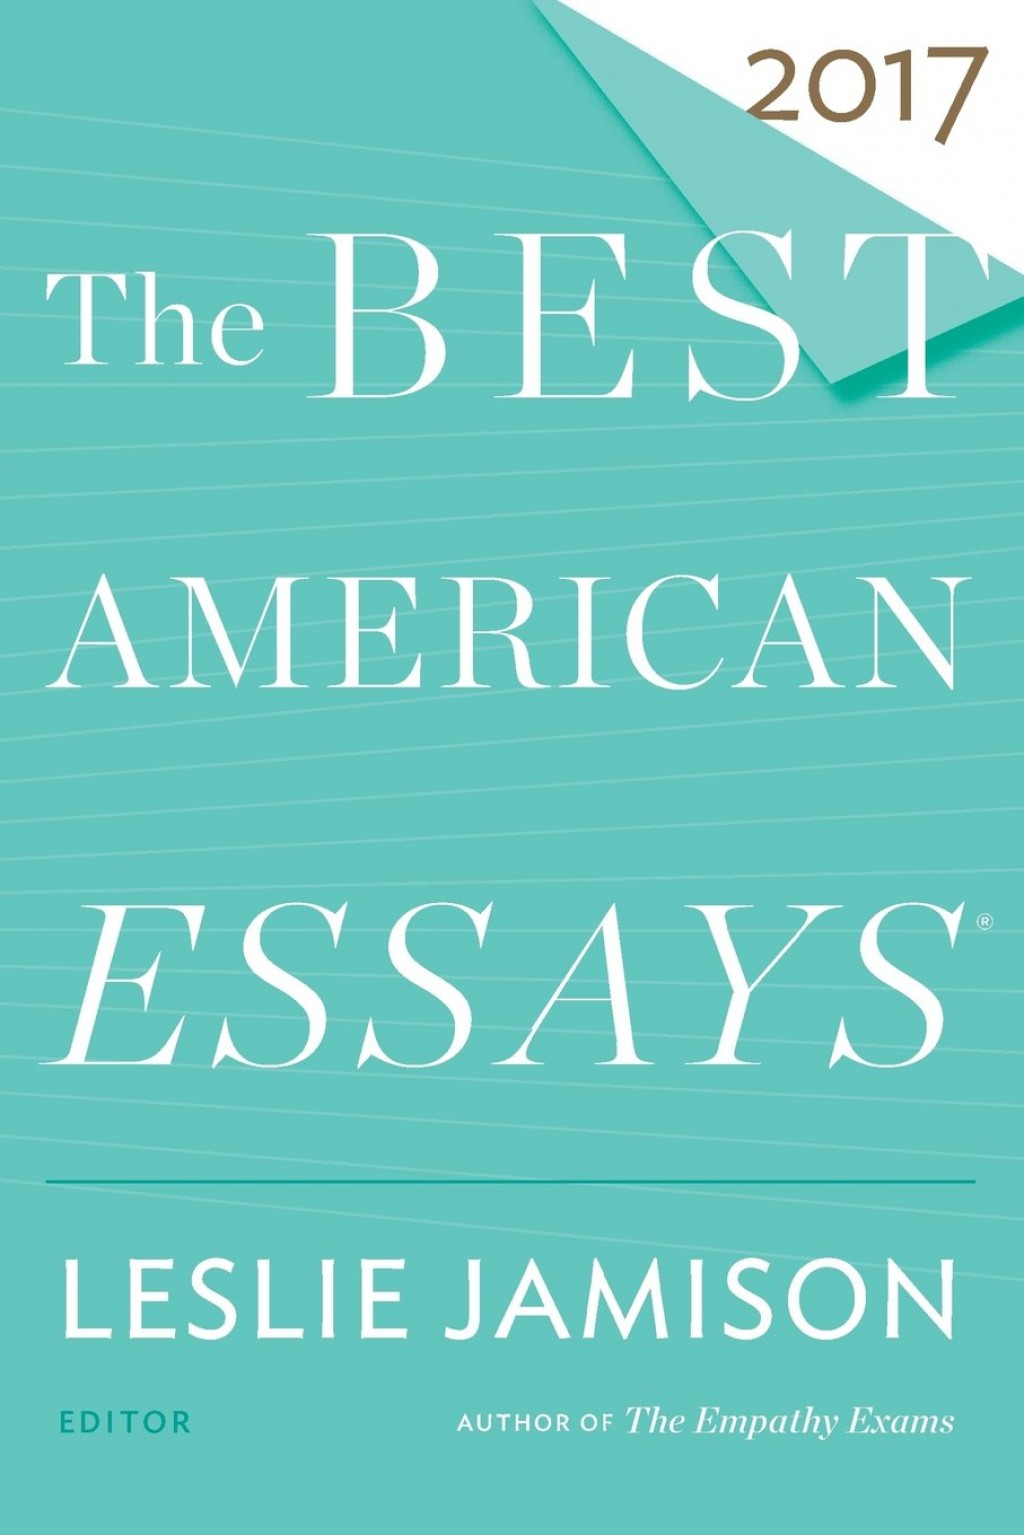 001 Best American Essays 61tzl Nruvl Essay Astounding 2017 Submissions Pdf Free Download Large